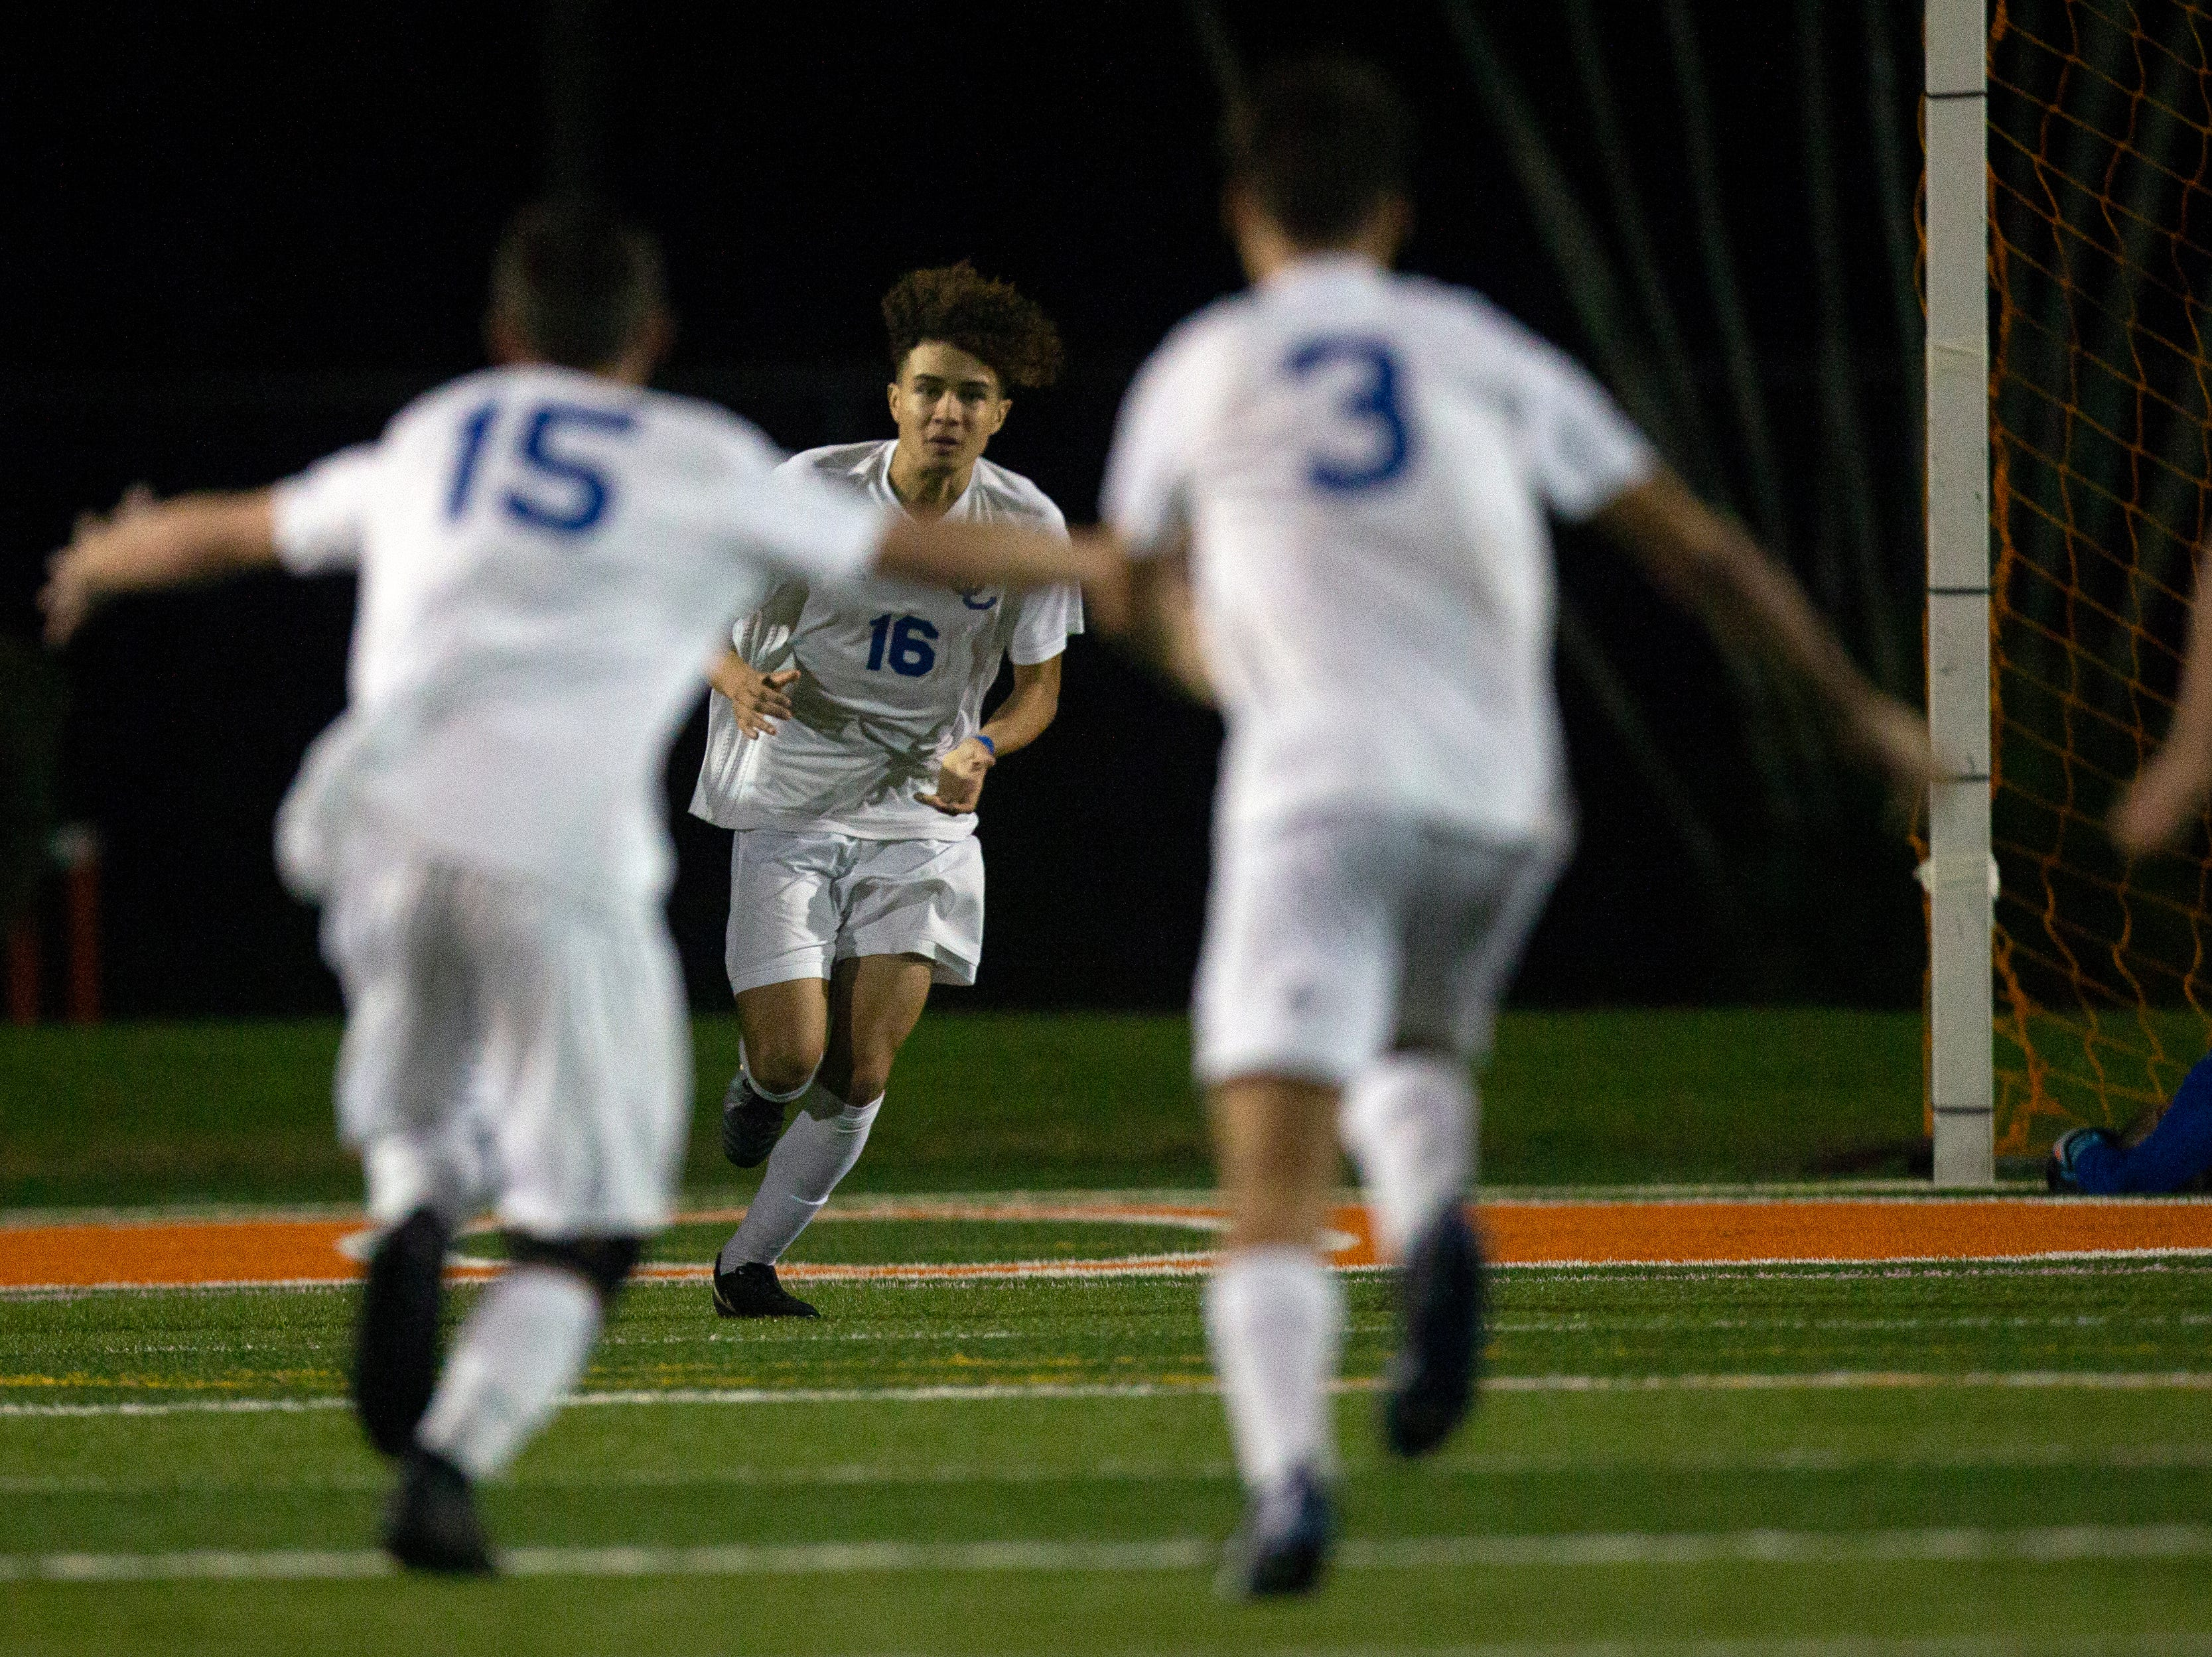 Cape Coral's Joao Soares runs back to his teammates after kicking in the winning goal during a penalty kick, Wednesday, Feb. 6, 2019, at Lely High School.